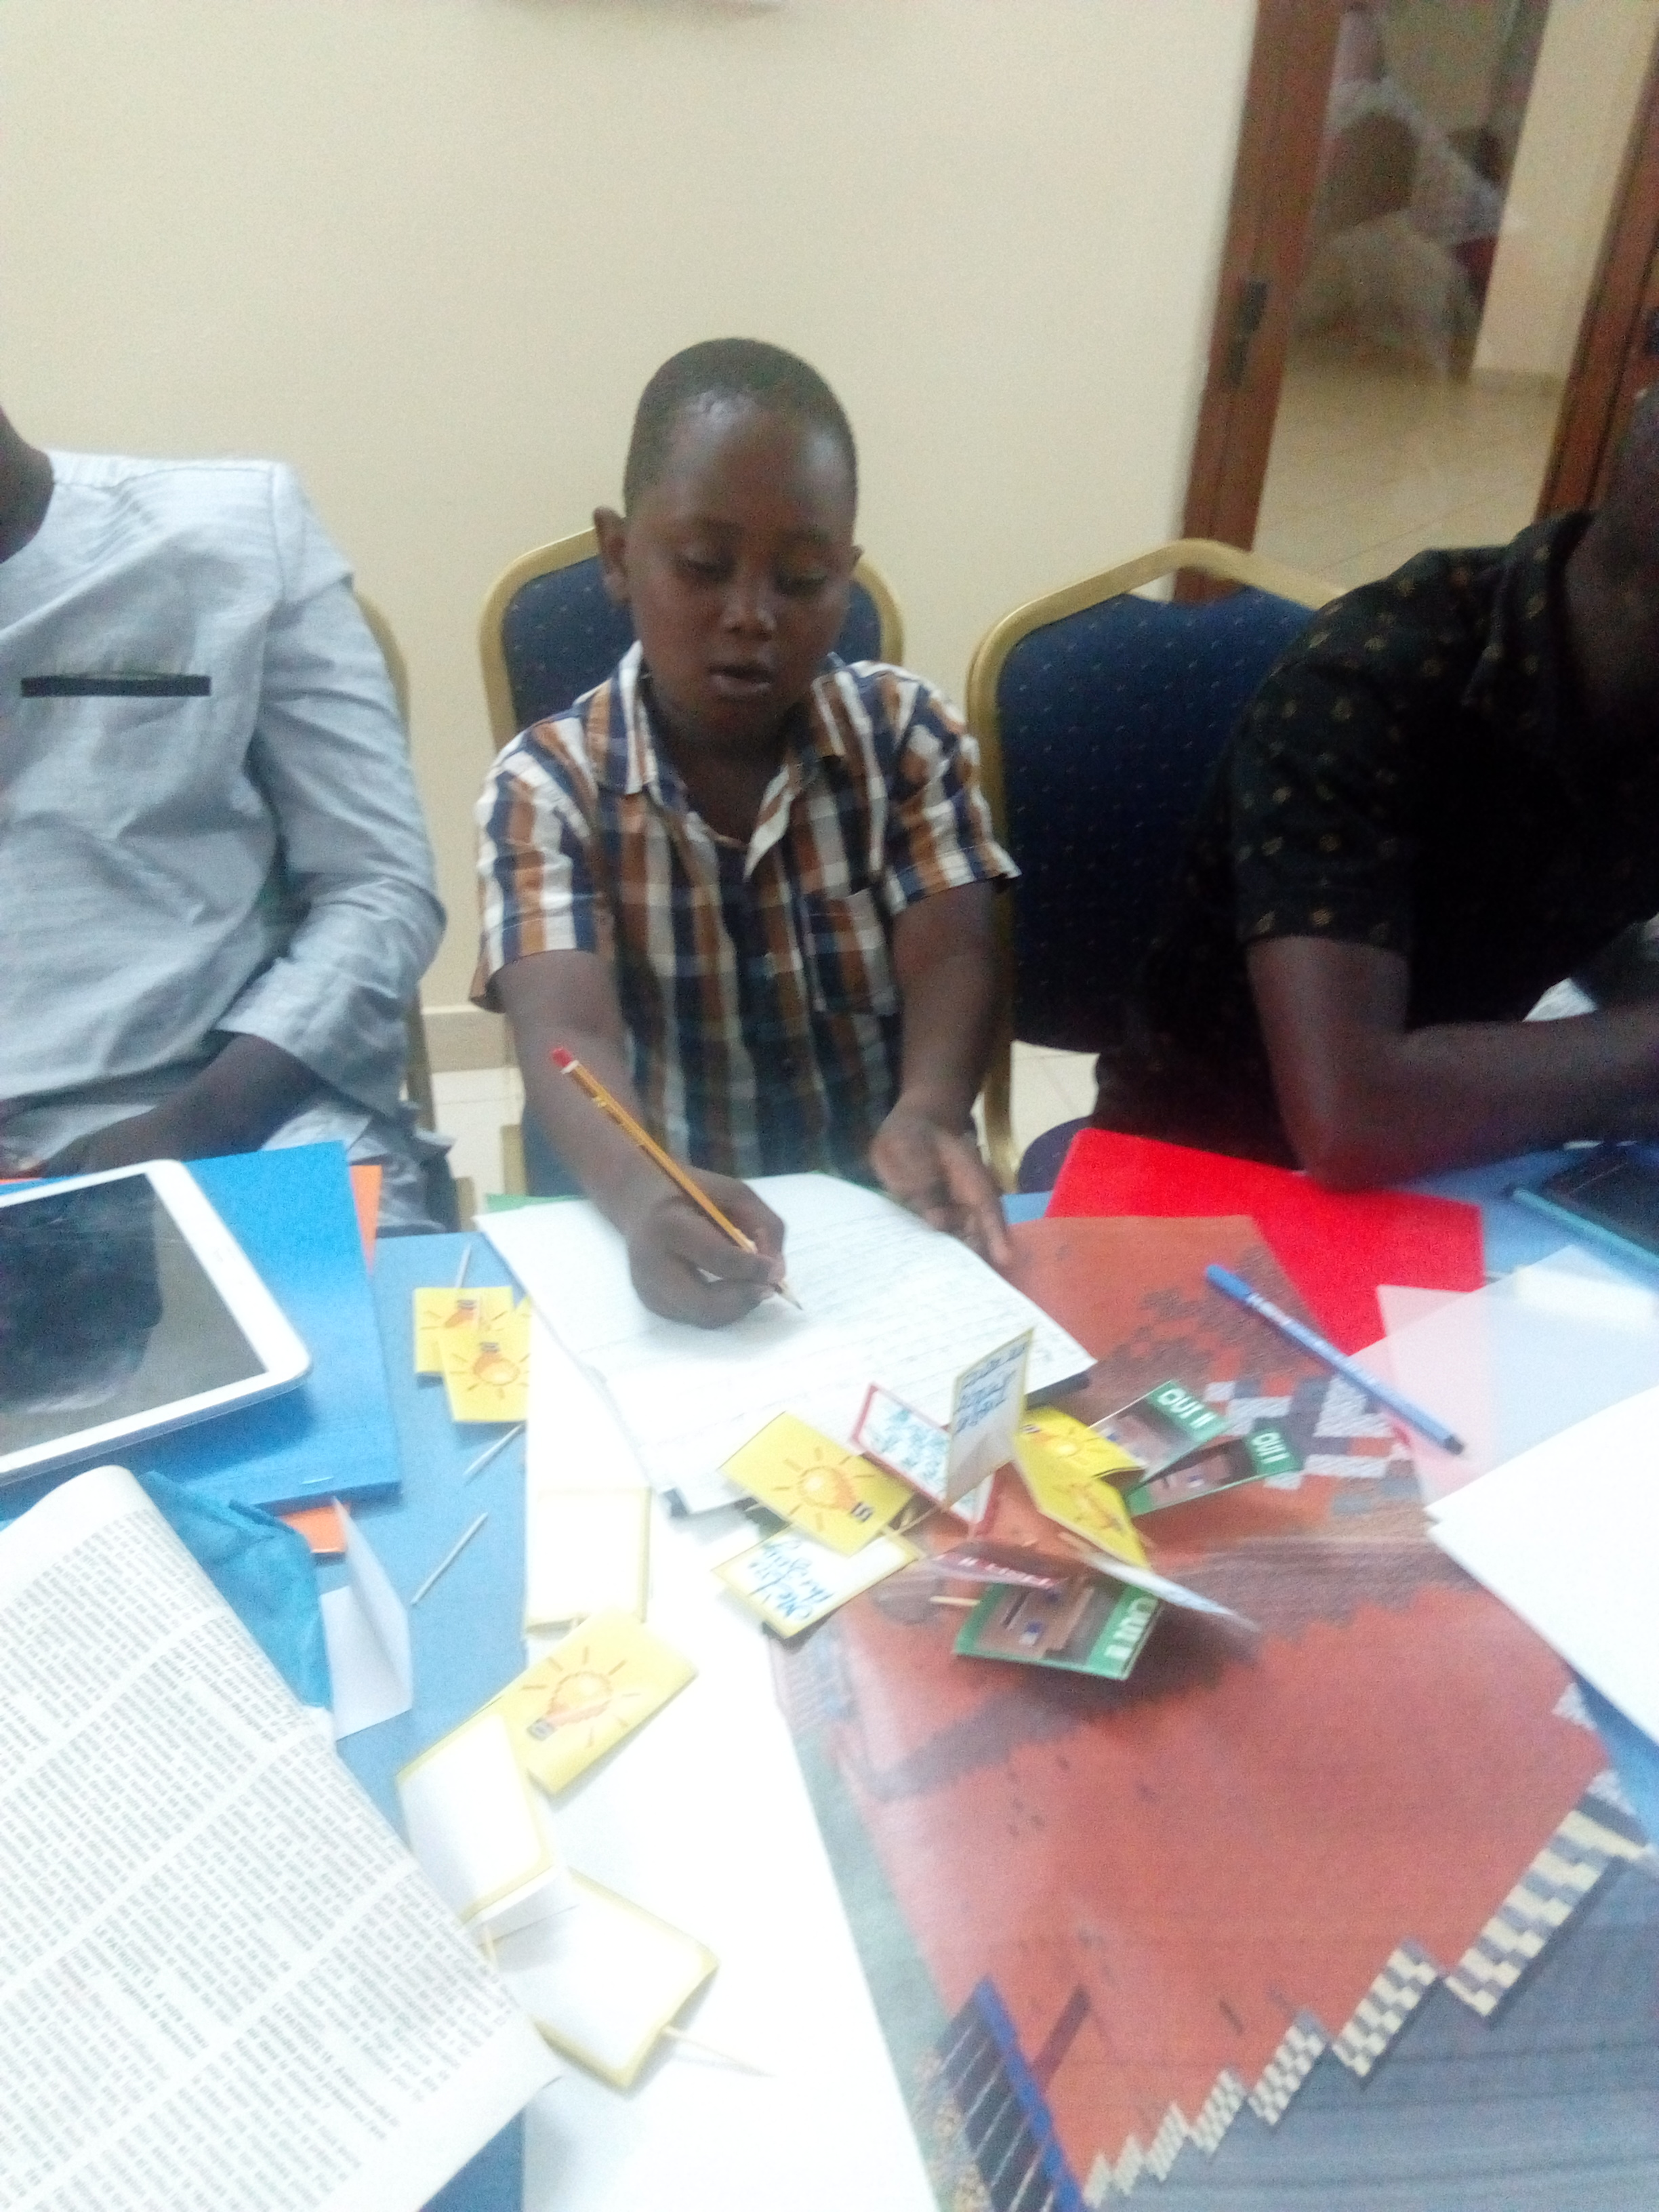 Participation from children and adults brought diverse ideas to the table. Credit: UN-Habitat